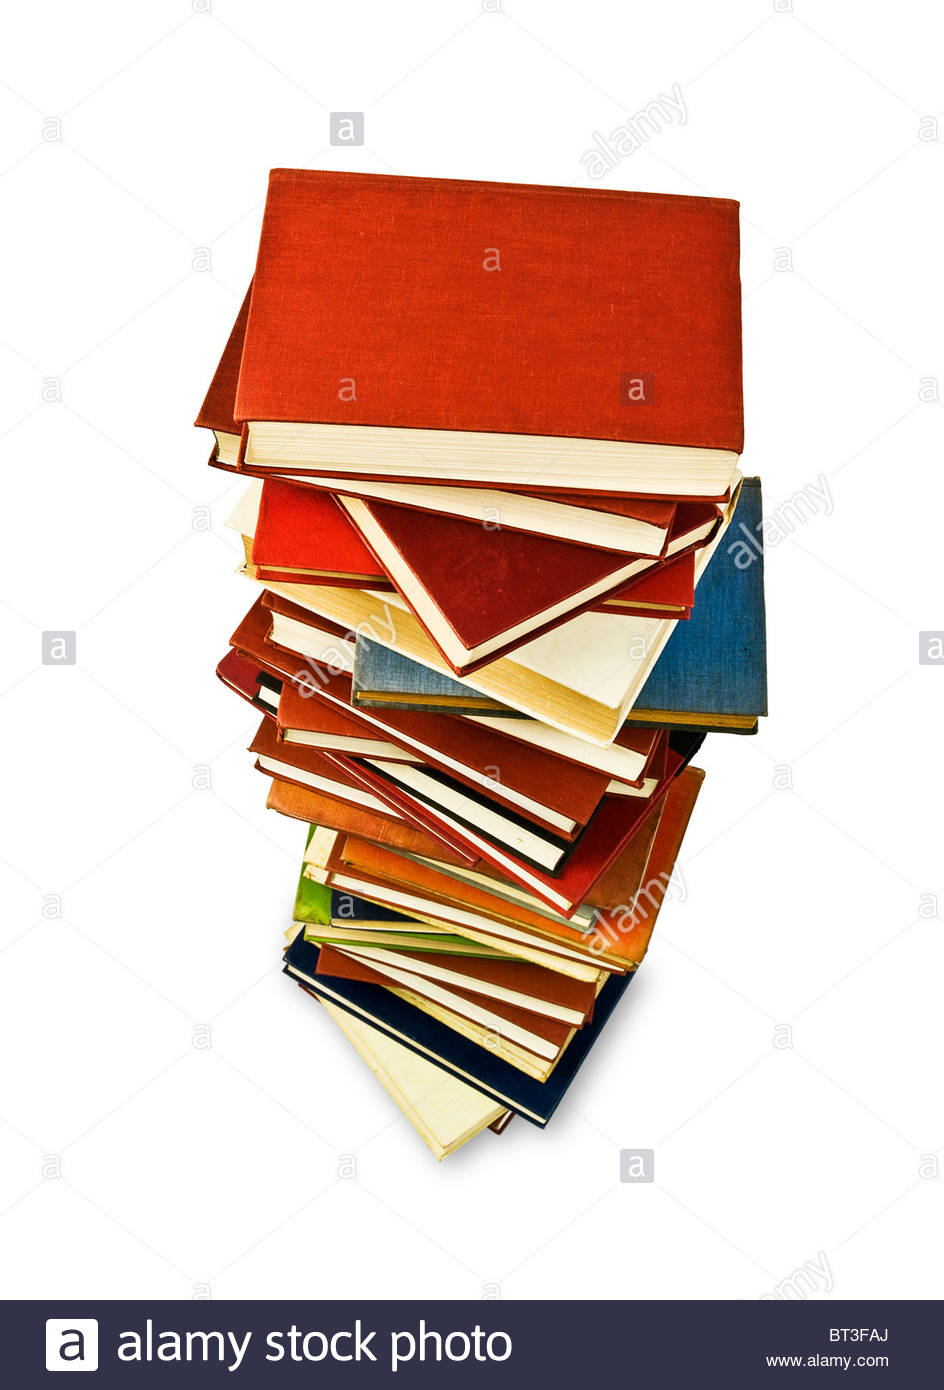 Pile of books - Stock Image